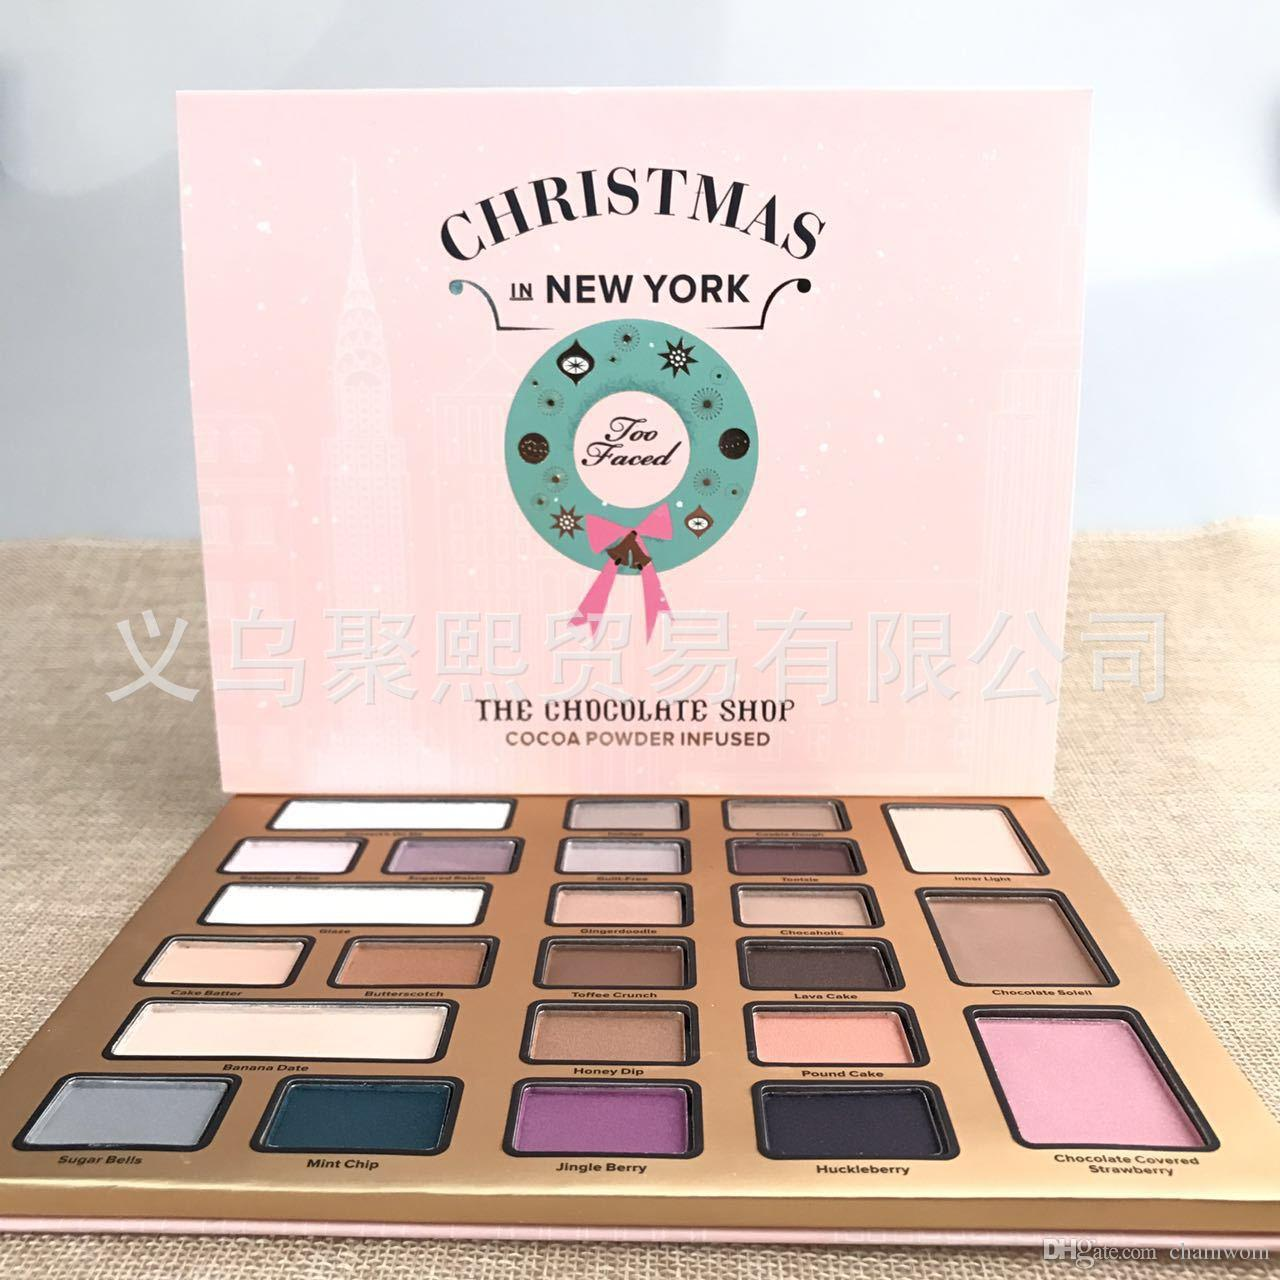 2017 too makeup christmas in new york the chocolate shop for New york in christmas 2017